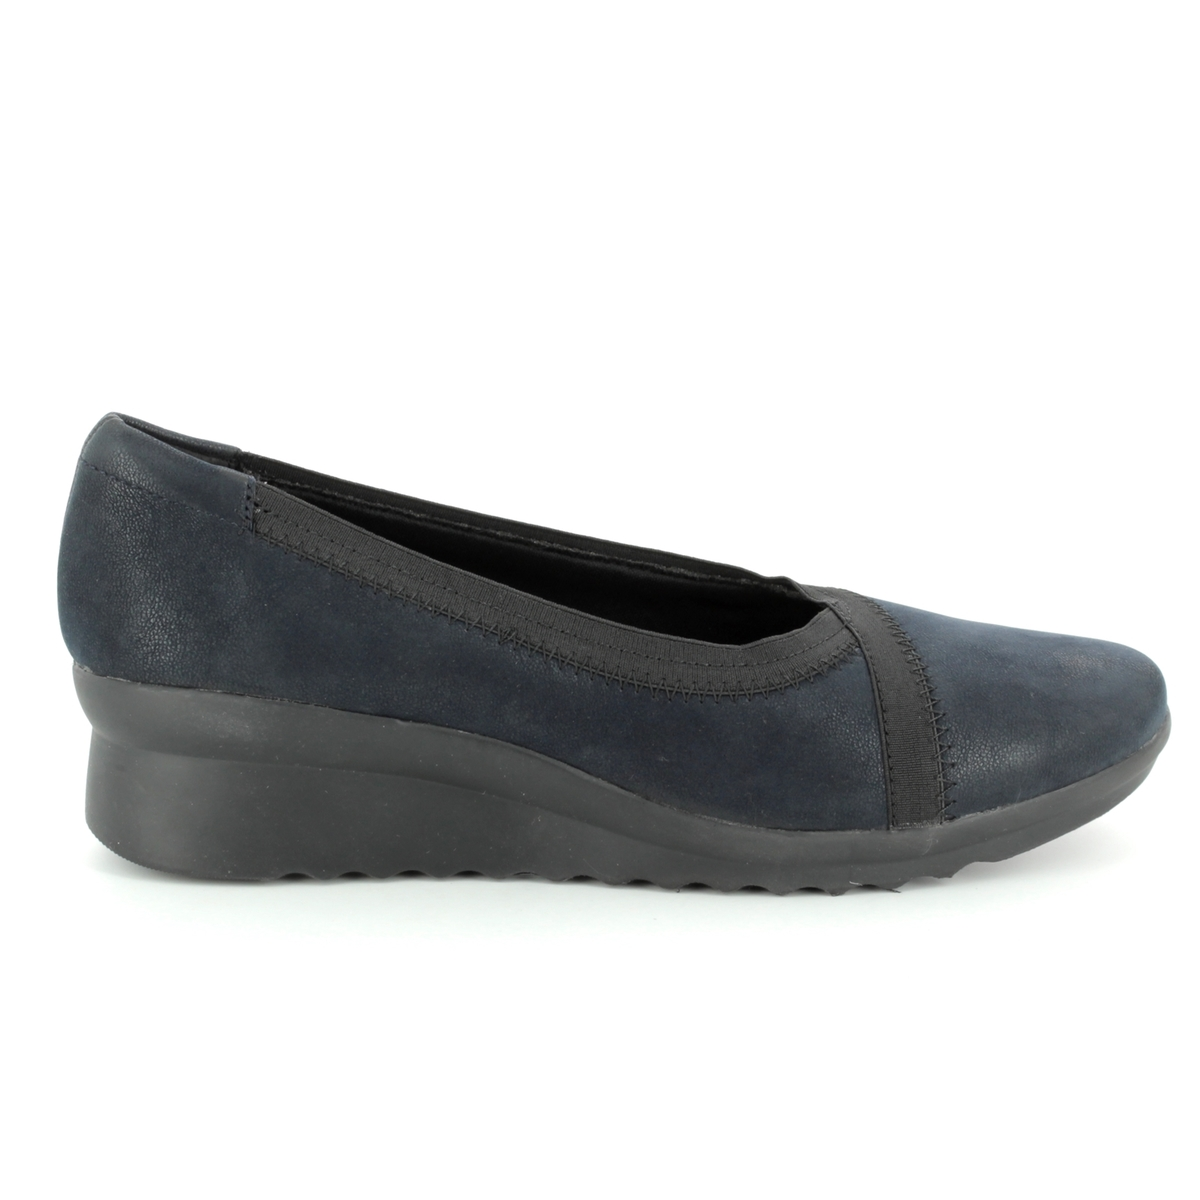 7a142685f6e3 Clarks Wedge Shoes - Navy - 3202 34D CADDELL DASH